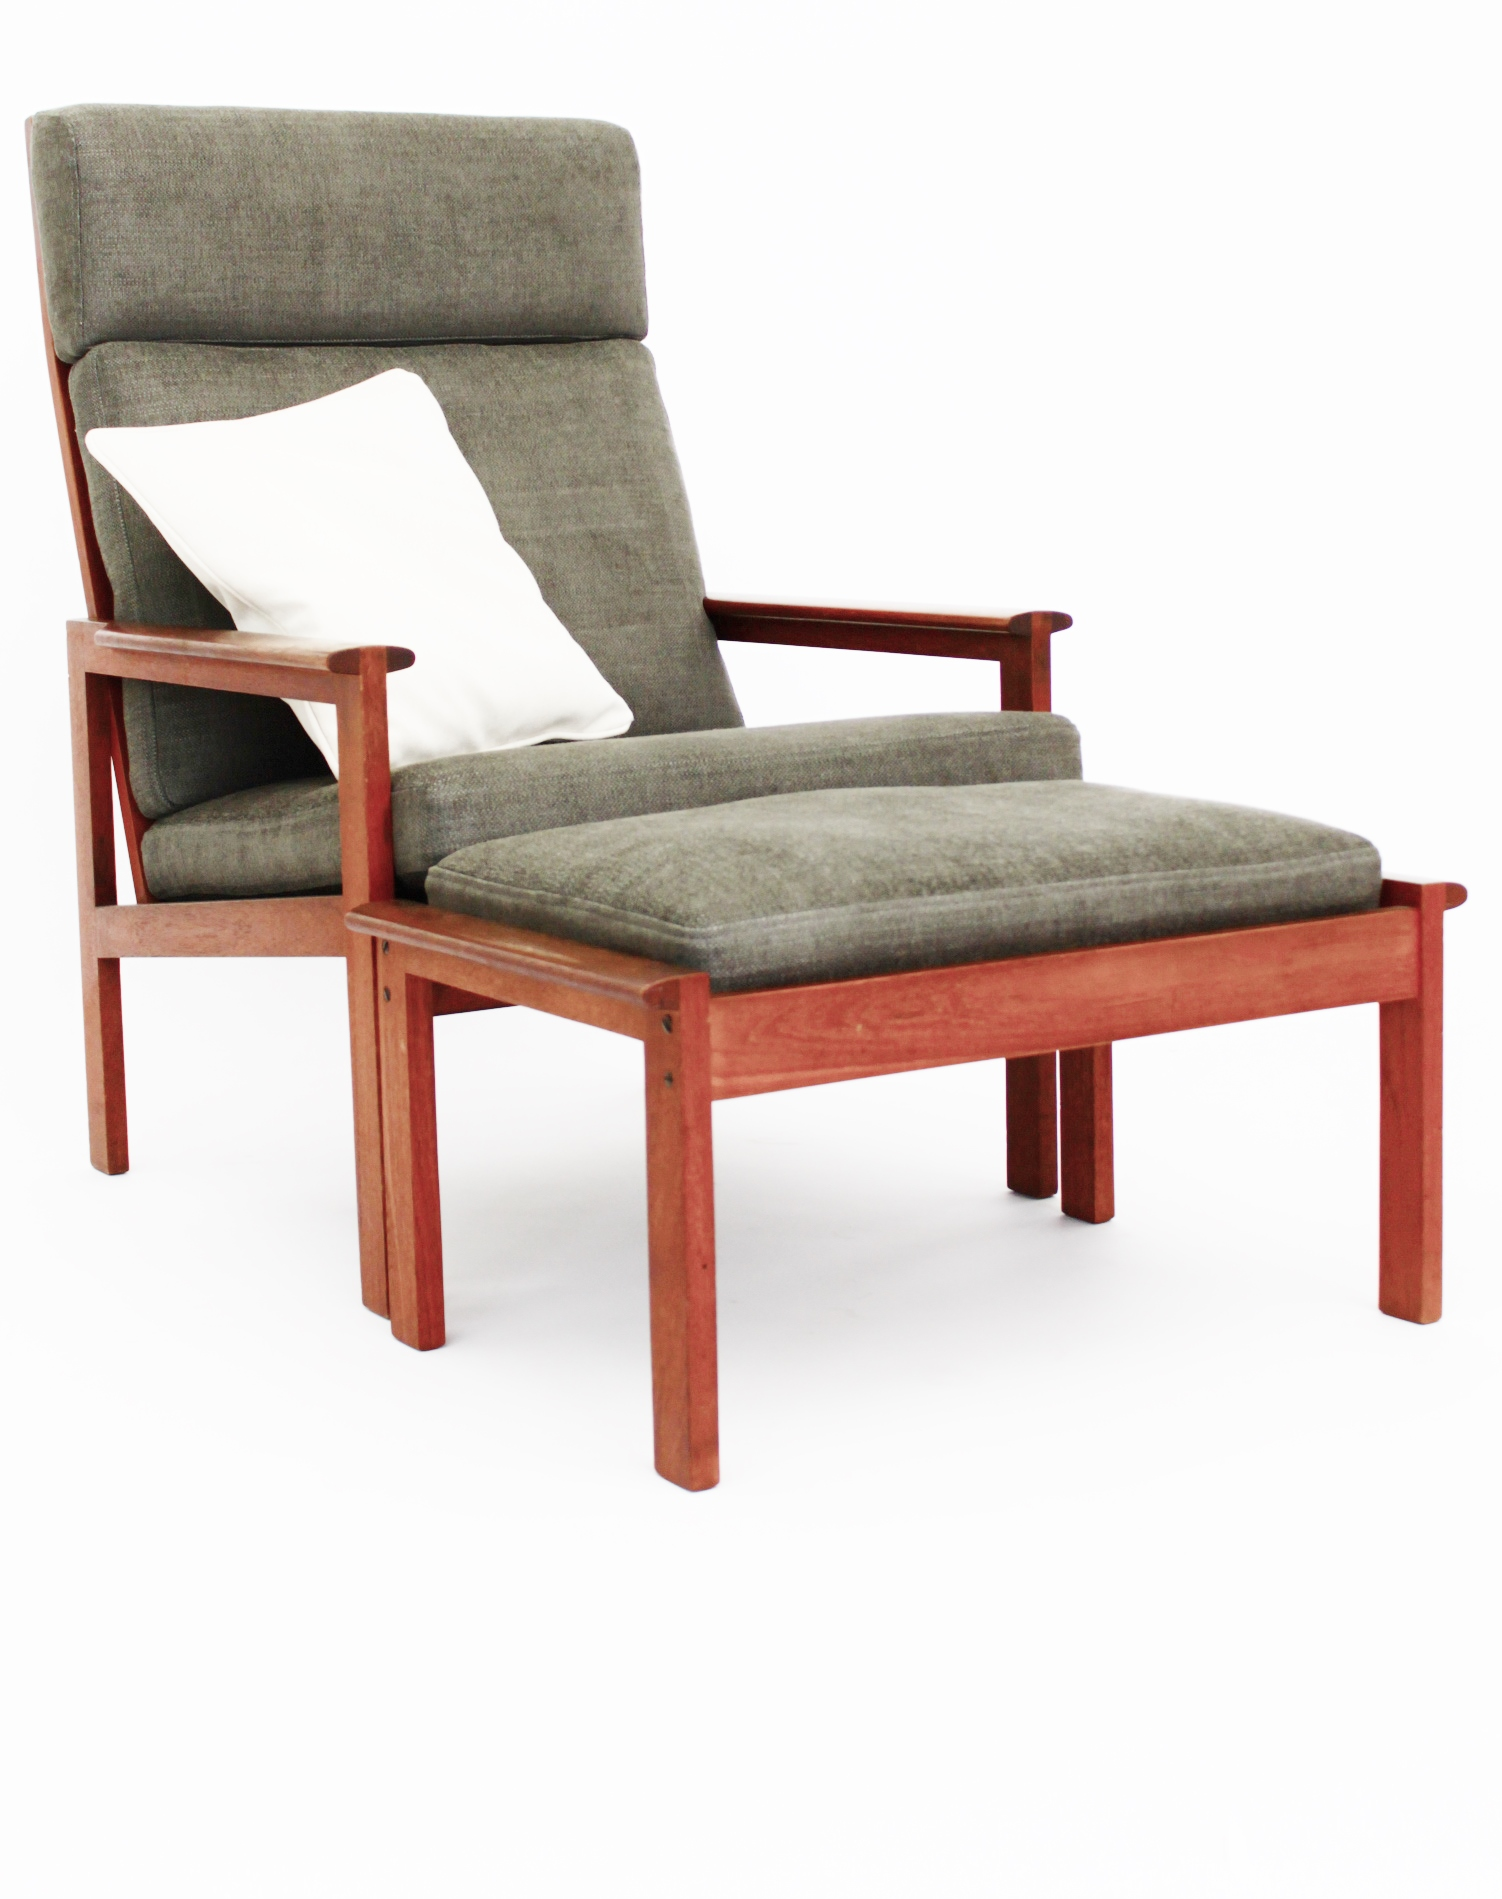 High Back Chair and Foot Stool